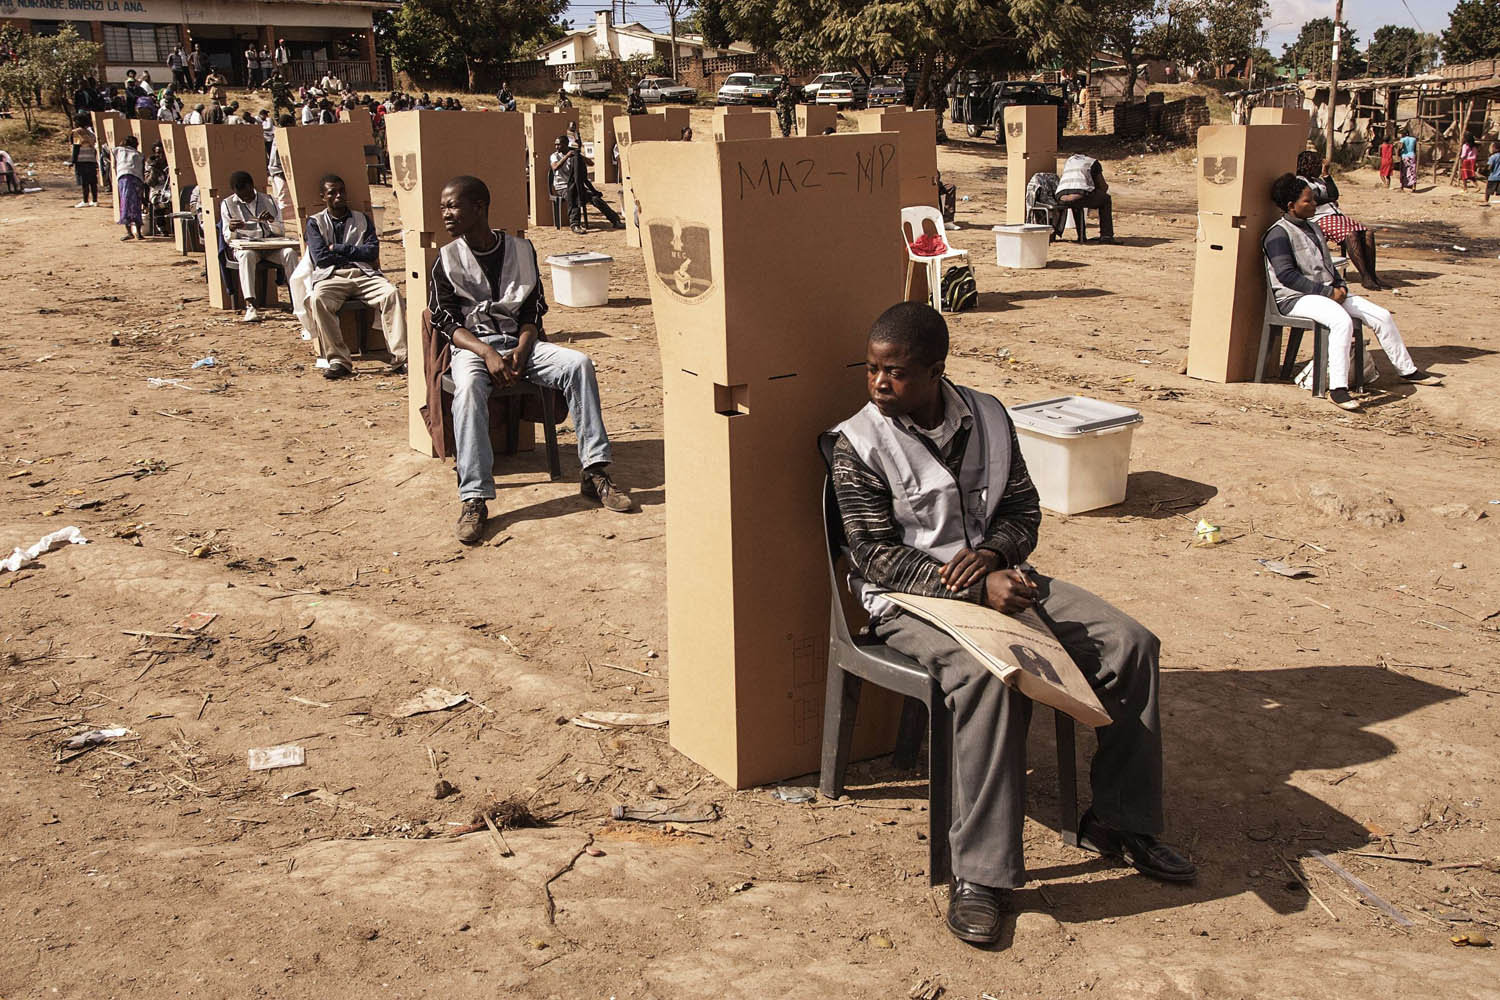 May 21, 2014. Malawian Electoral Commission workers and officers sit near the polling booths as voting procedures are repeated in Ndirande after polling was disrupted yesterday in Blantyre.